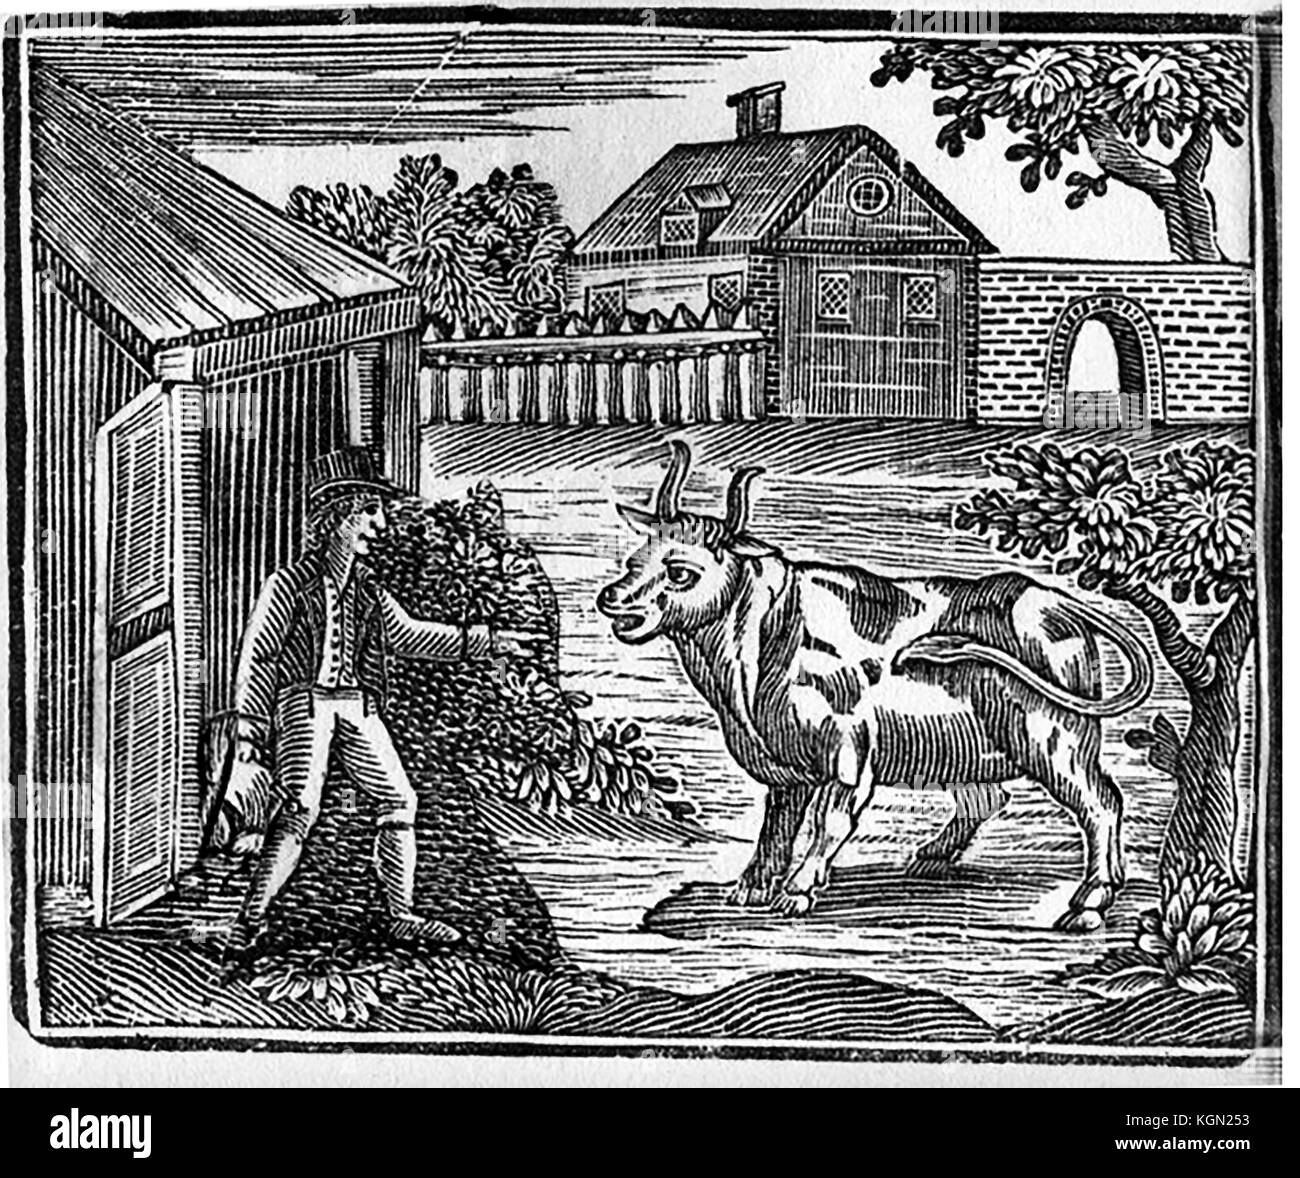 An early woodcut showing an English  farmer carrying a saddle ready to ride his oxen or cow - Stock Image